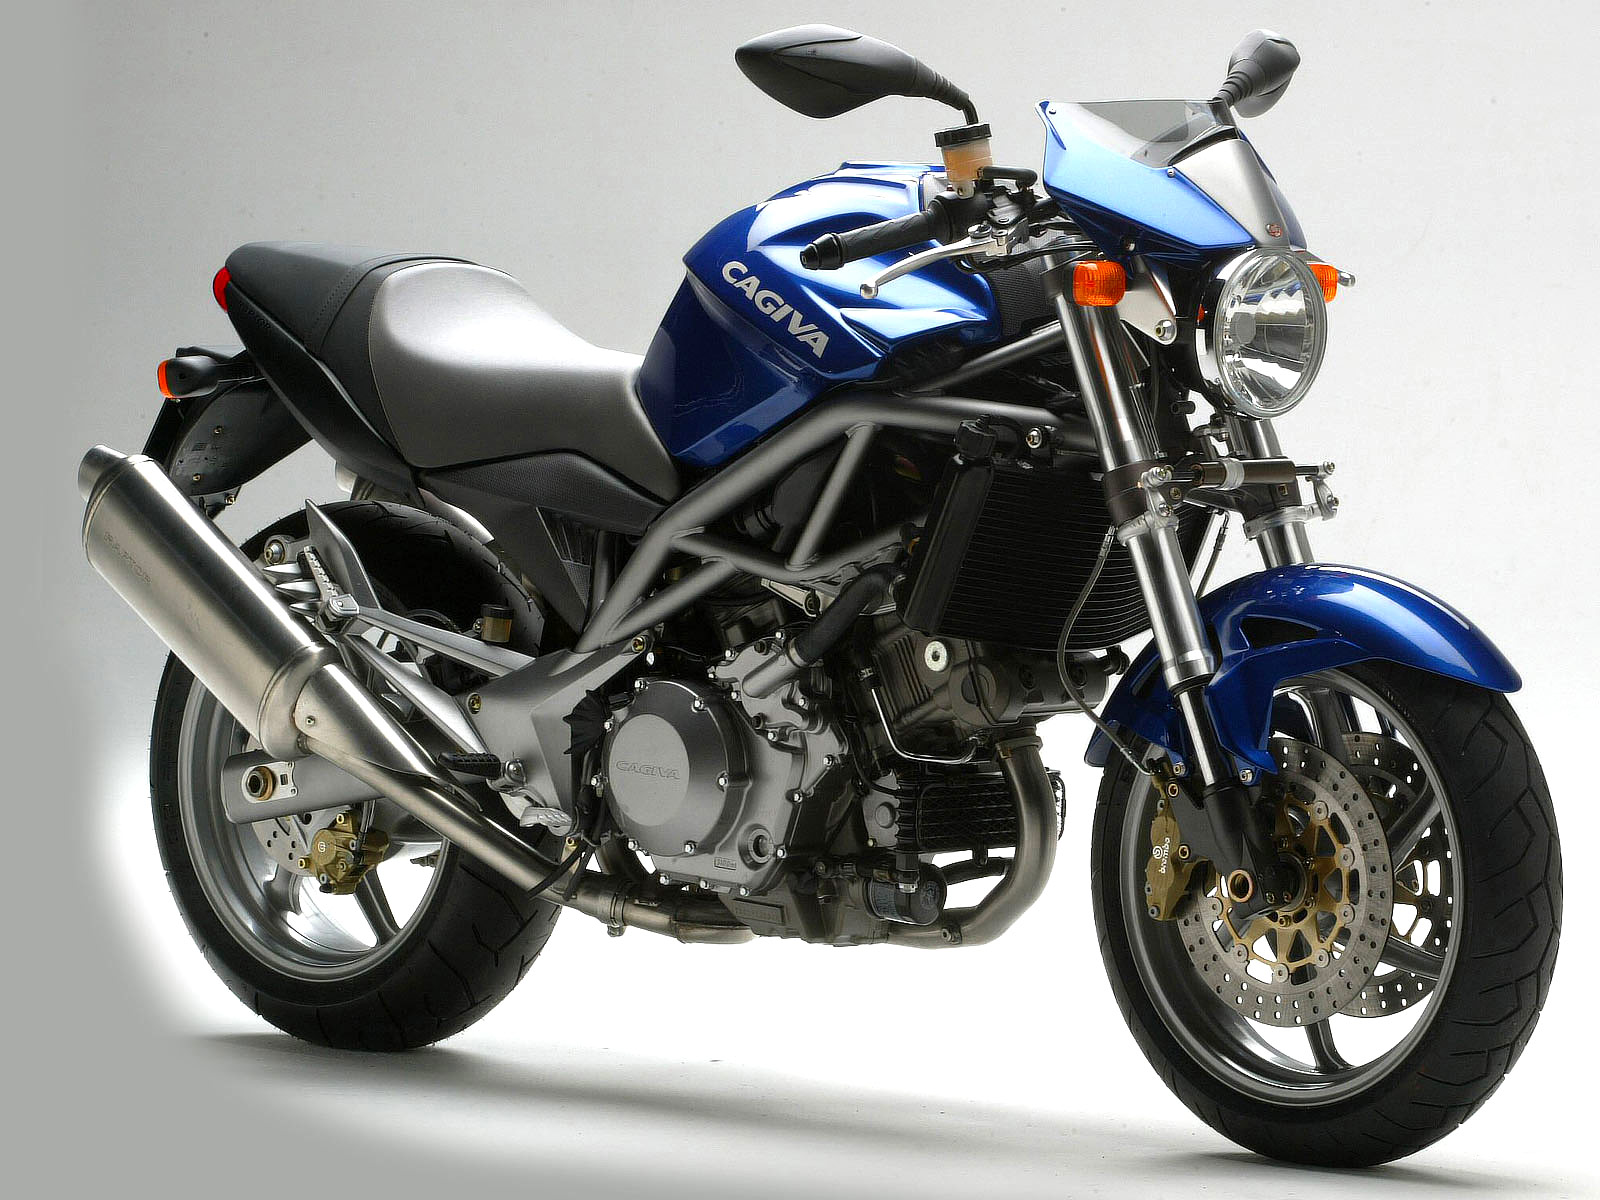 Cagiva Raptor 1000 Specification